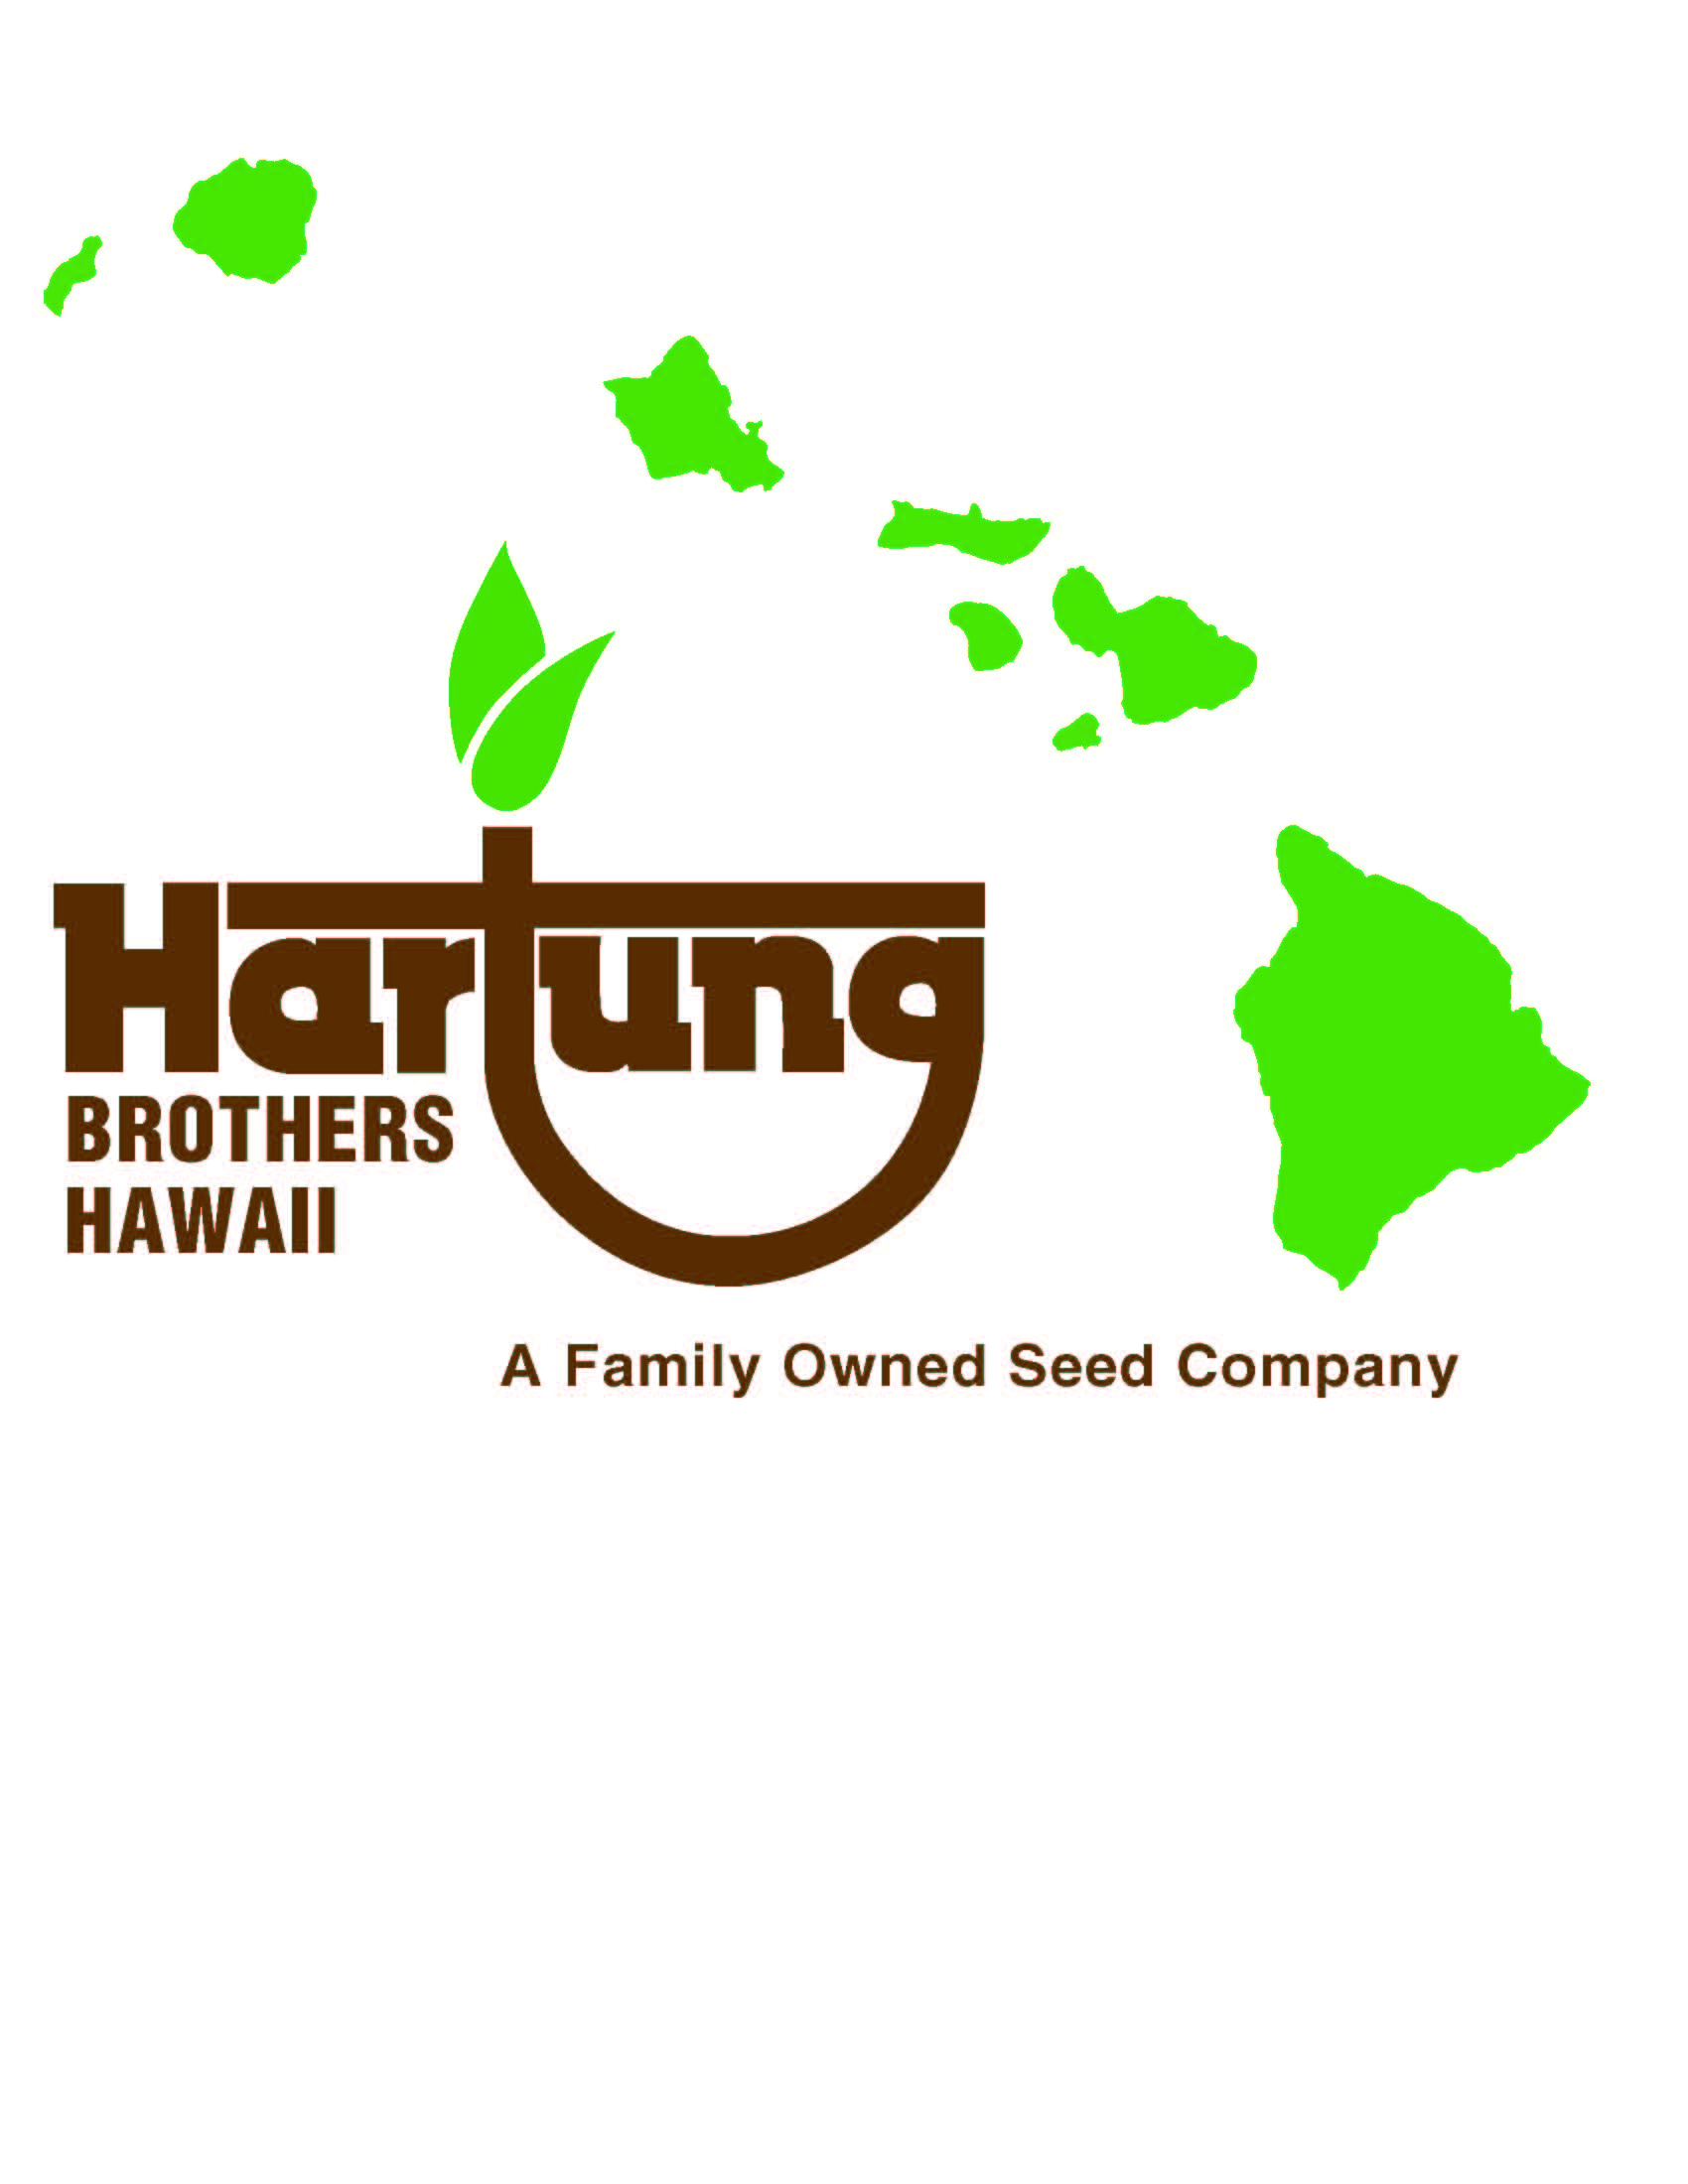 Hartung Brothers Hawaii